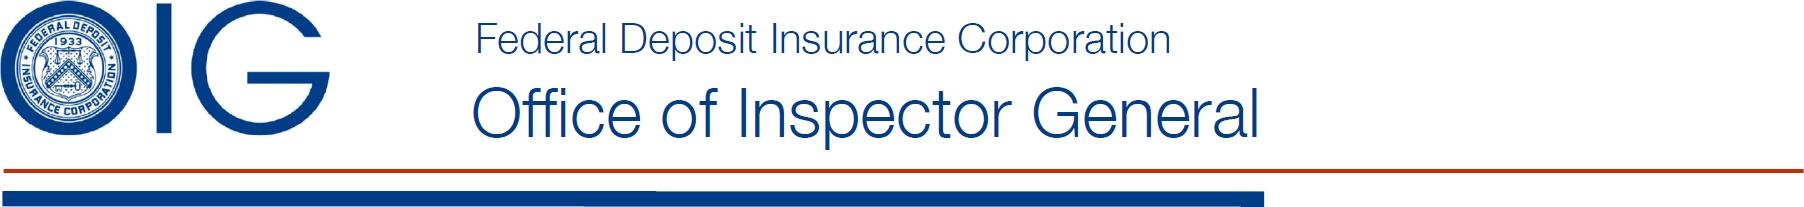 Federal Deposit Insurance Corporation - Office of Inspector General